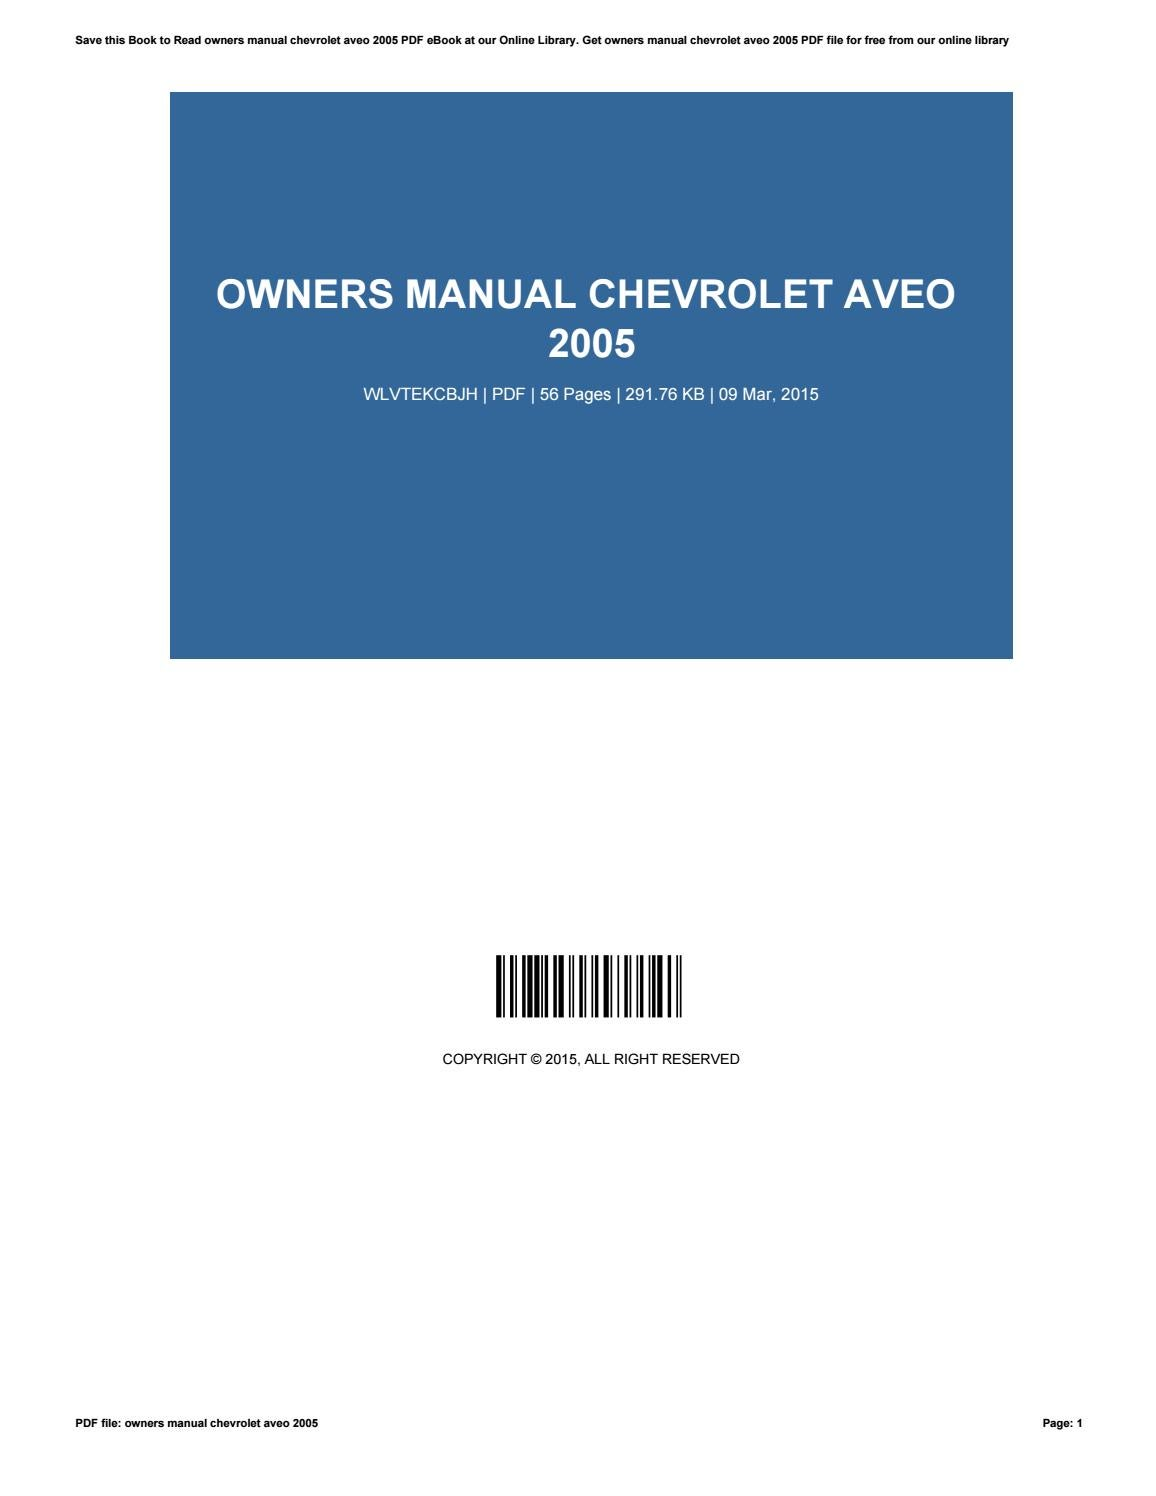 Chevy aveo so cheap user manuals 2002 2006 chevy repair manual rh calameo com array owners manual chevrolet aveo 2005 by williamhurst4859 issuu rh issuu fandeluxe Gallery